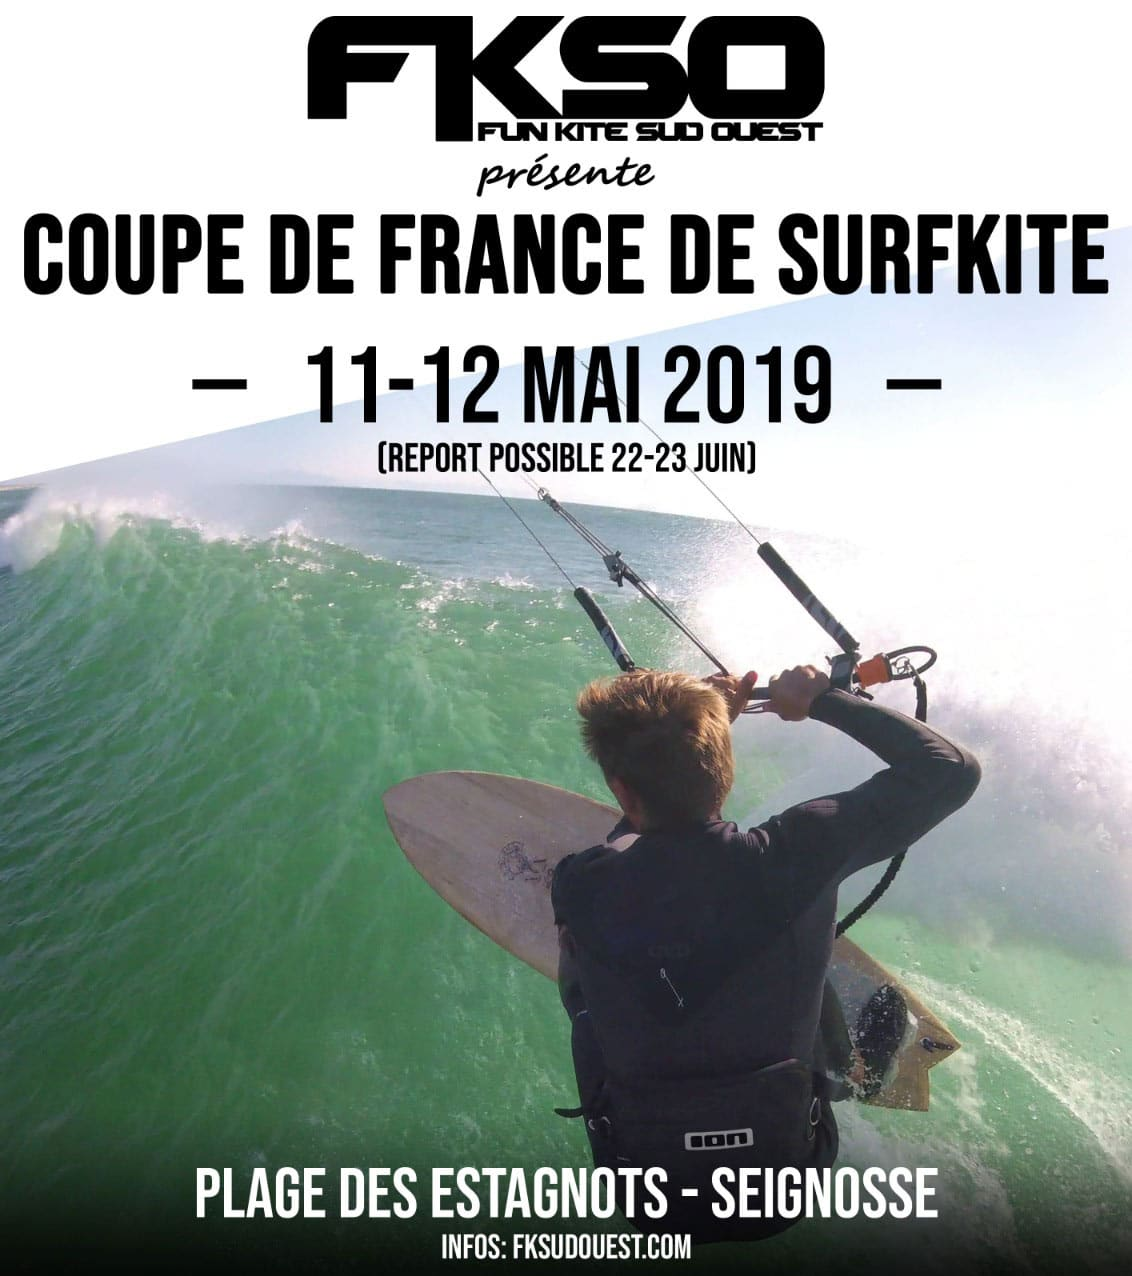 coupe de france de surfkite